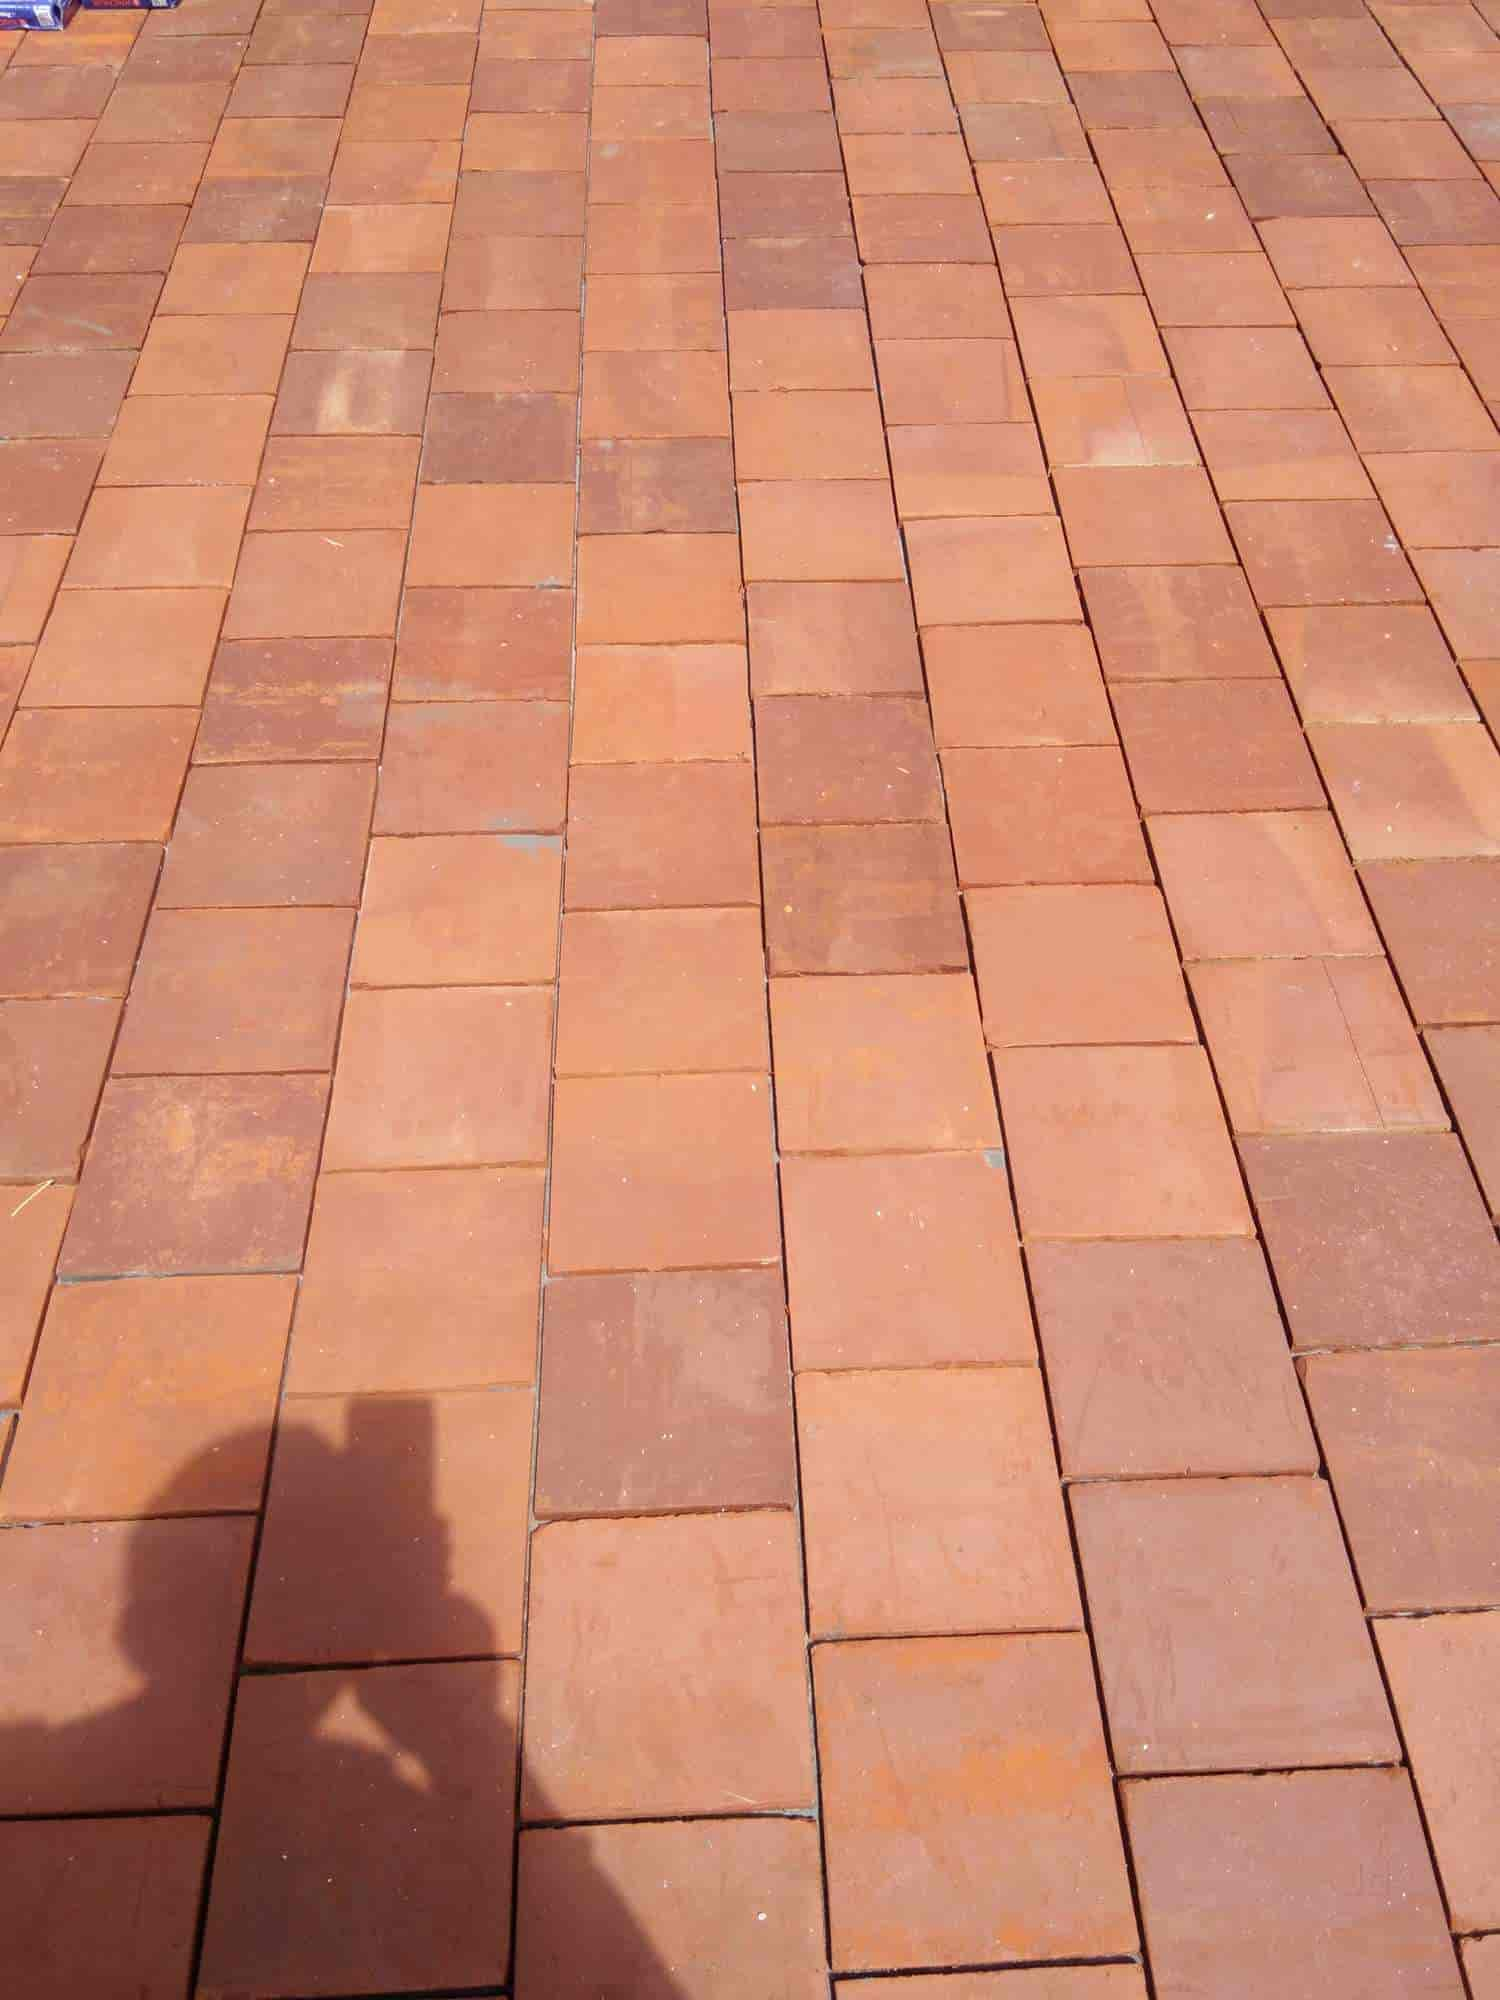 Srinidhi Clay Tiles Bogadi Tile Dealers In Mysore Justdial